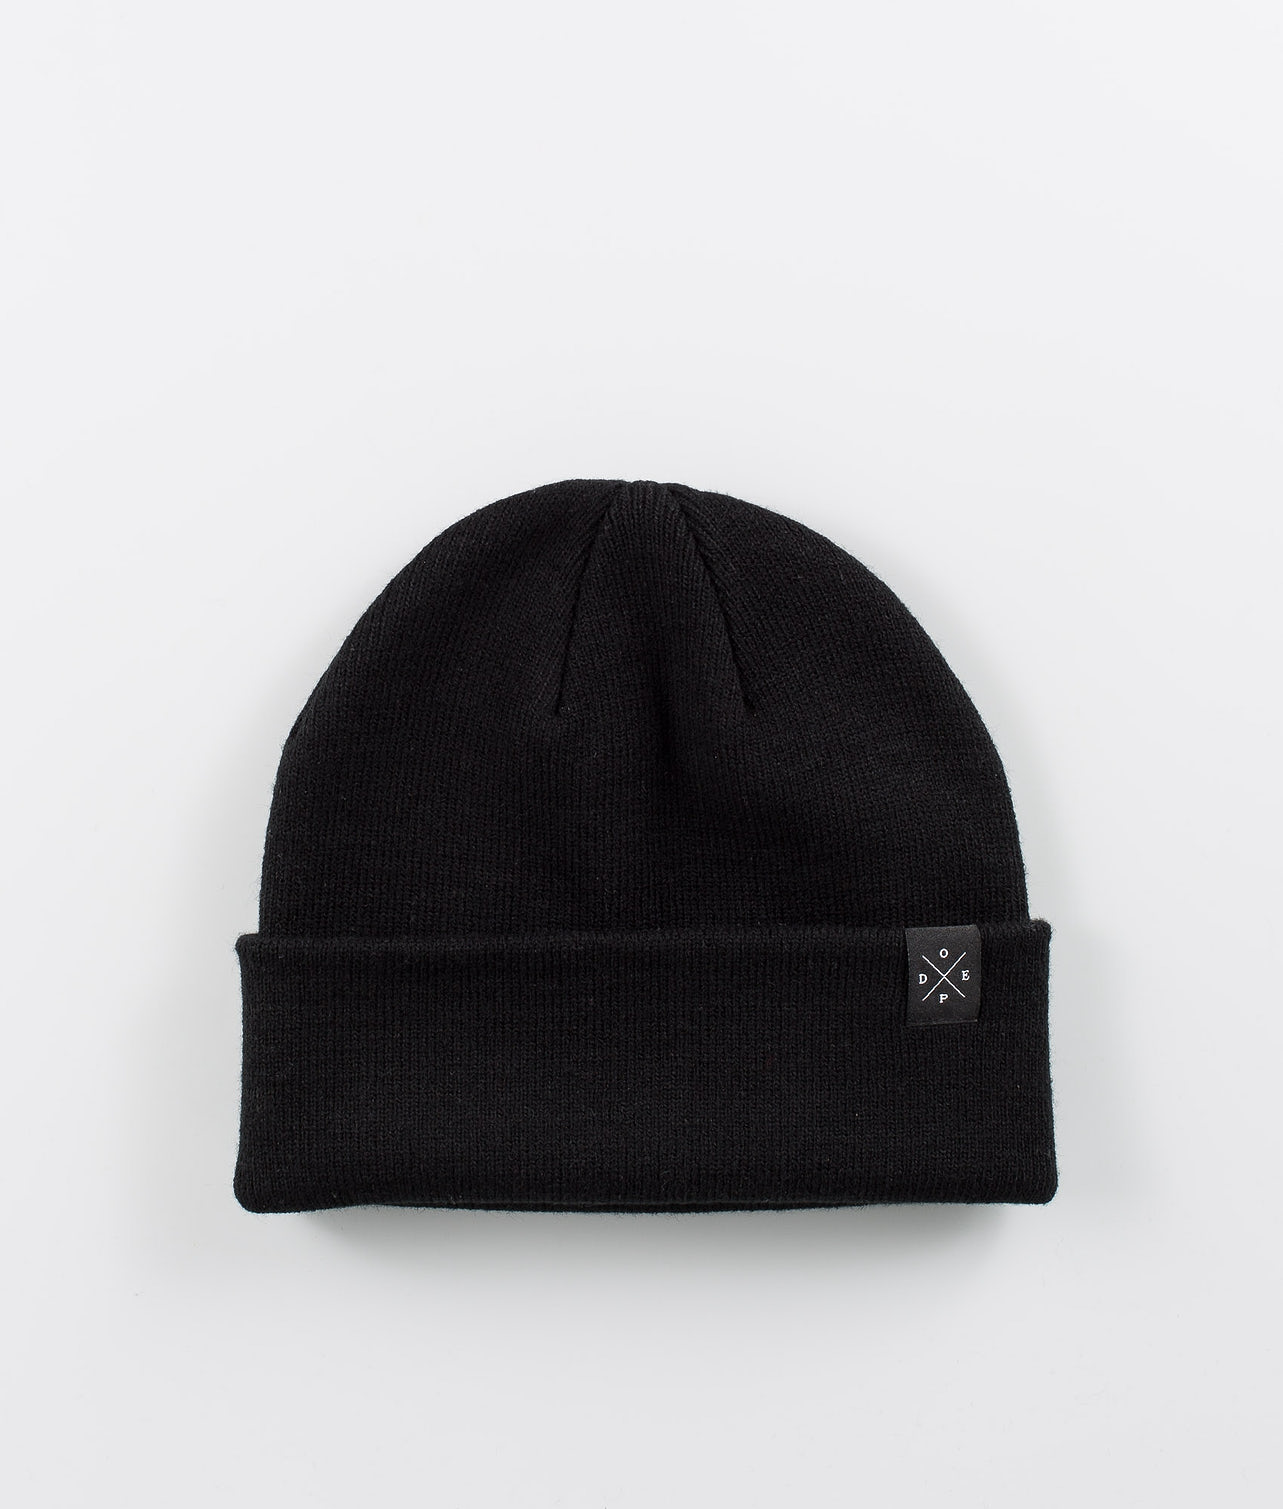 Buy Solitude Beanie from Dope at Ridestore.com - Always free shipping, free returns and 30 days money back guarantee